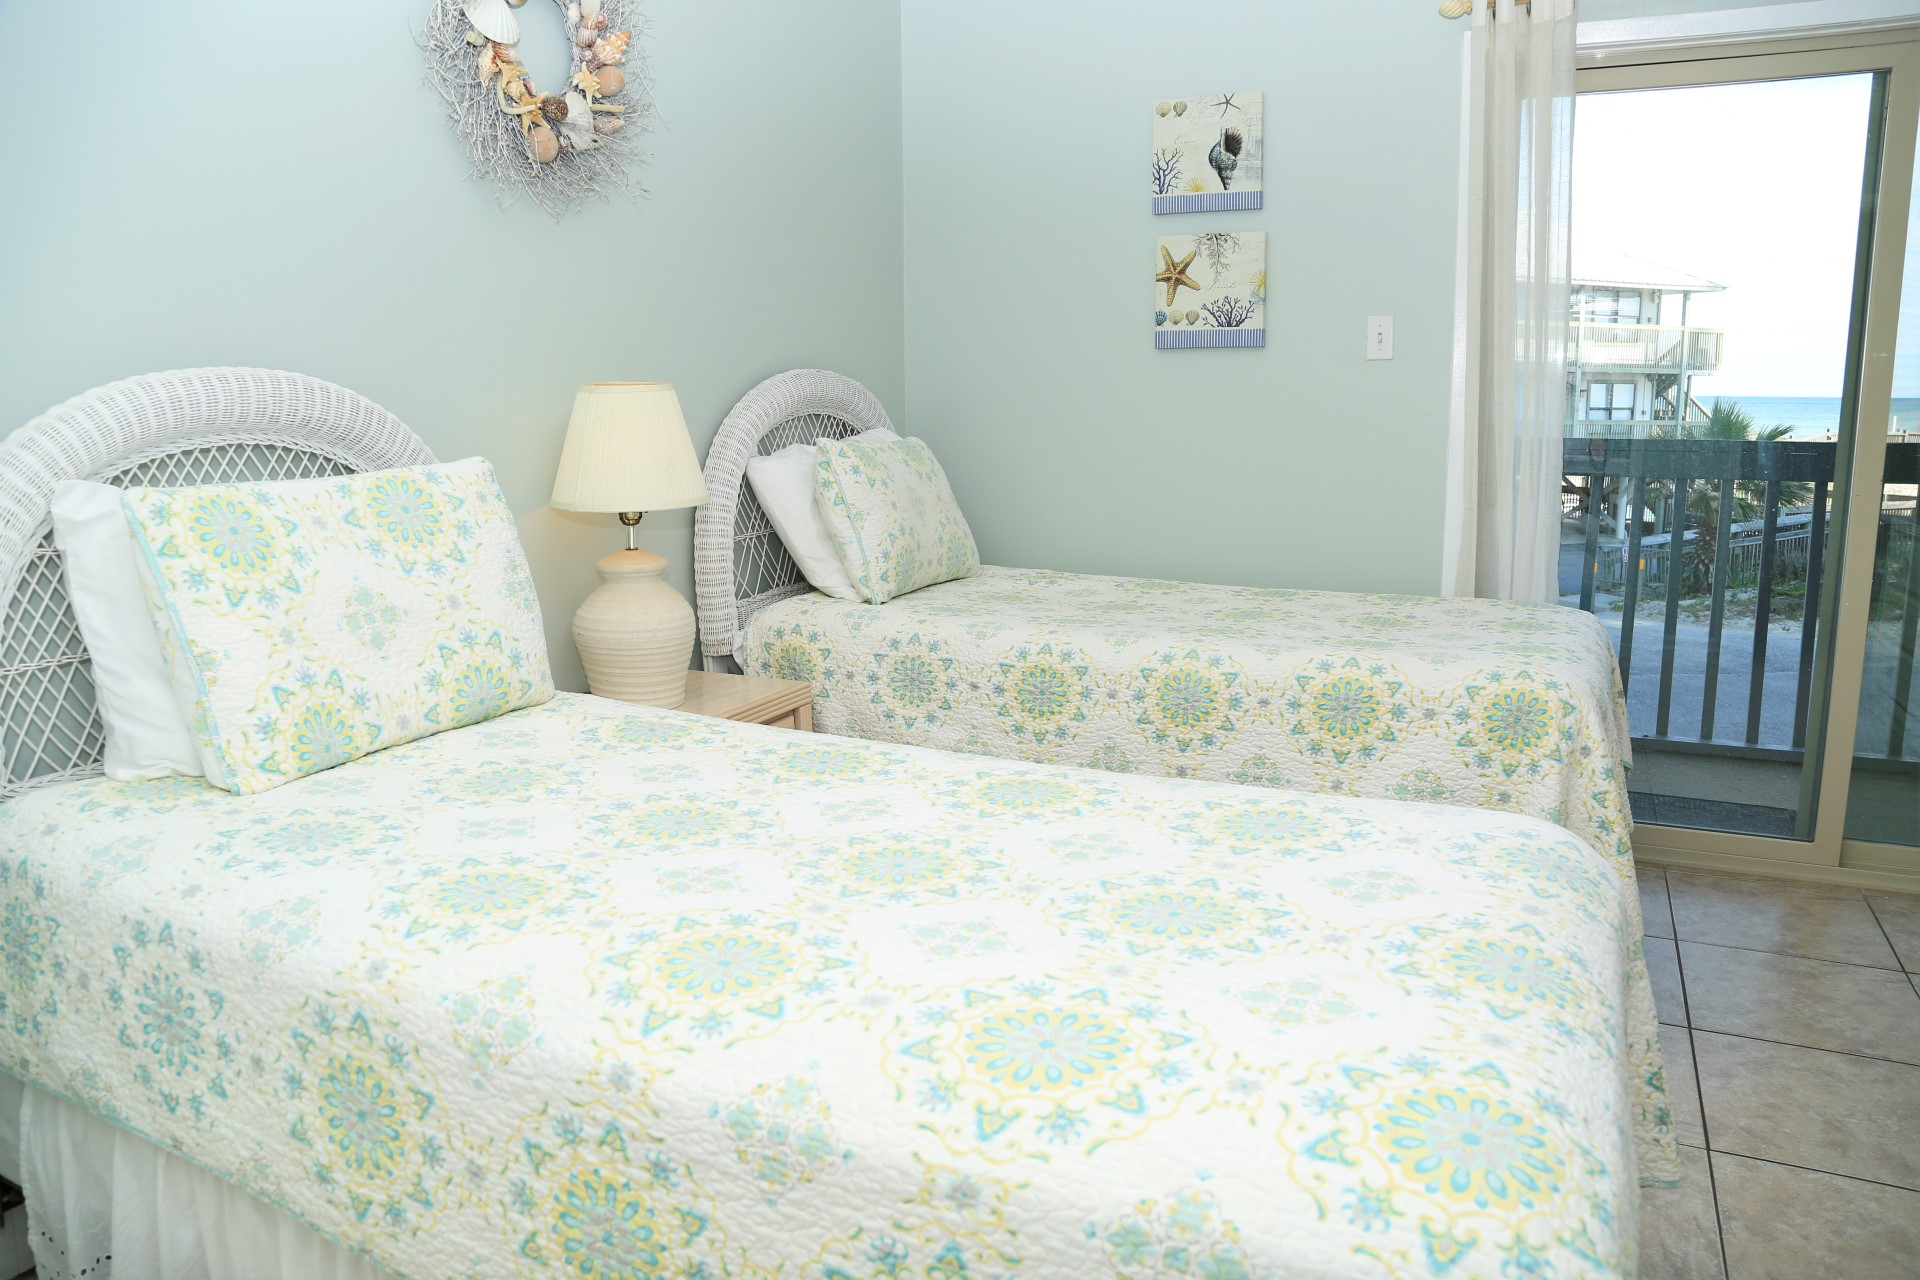 The second bedroom includes 2 twin-size beds, a 22